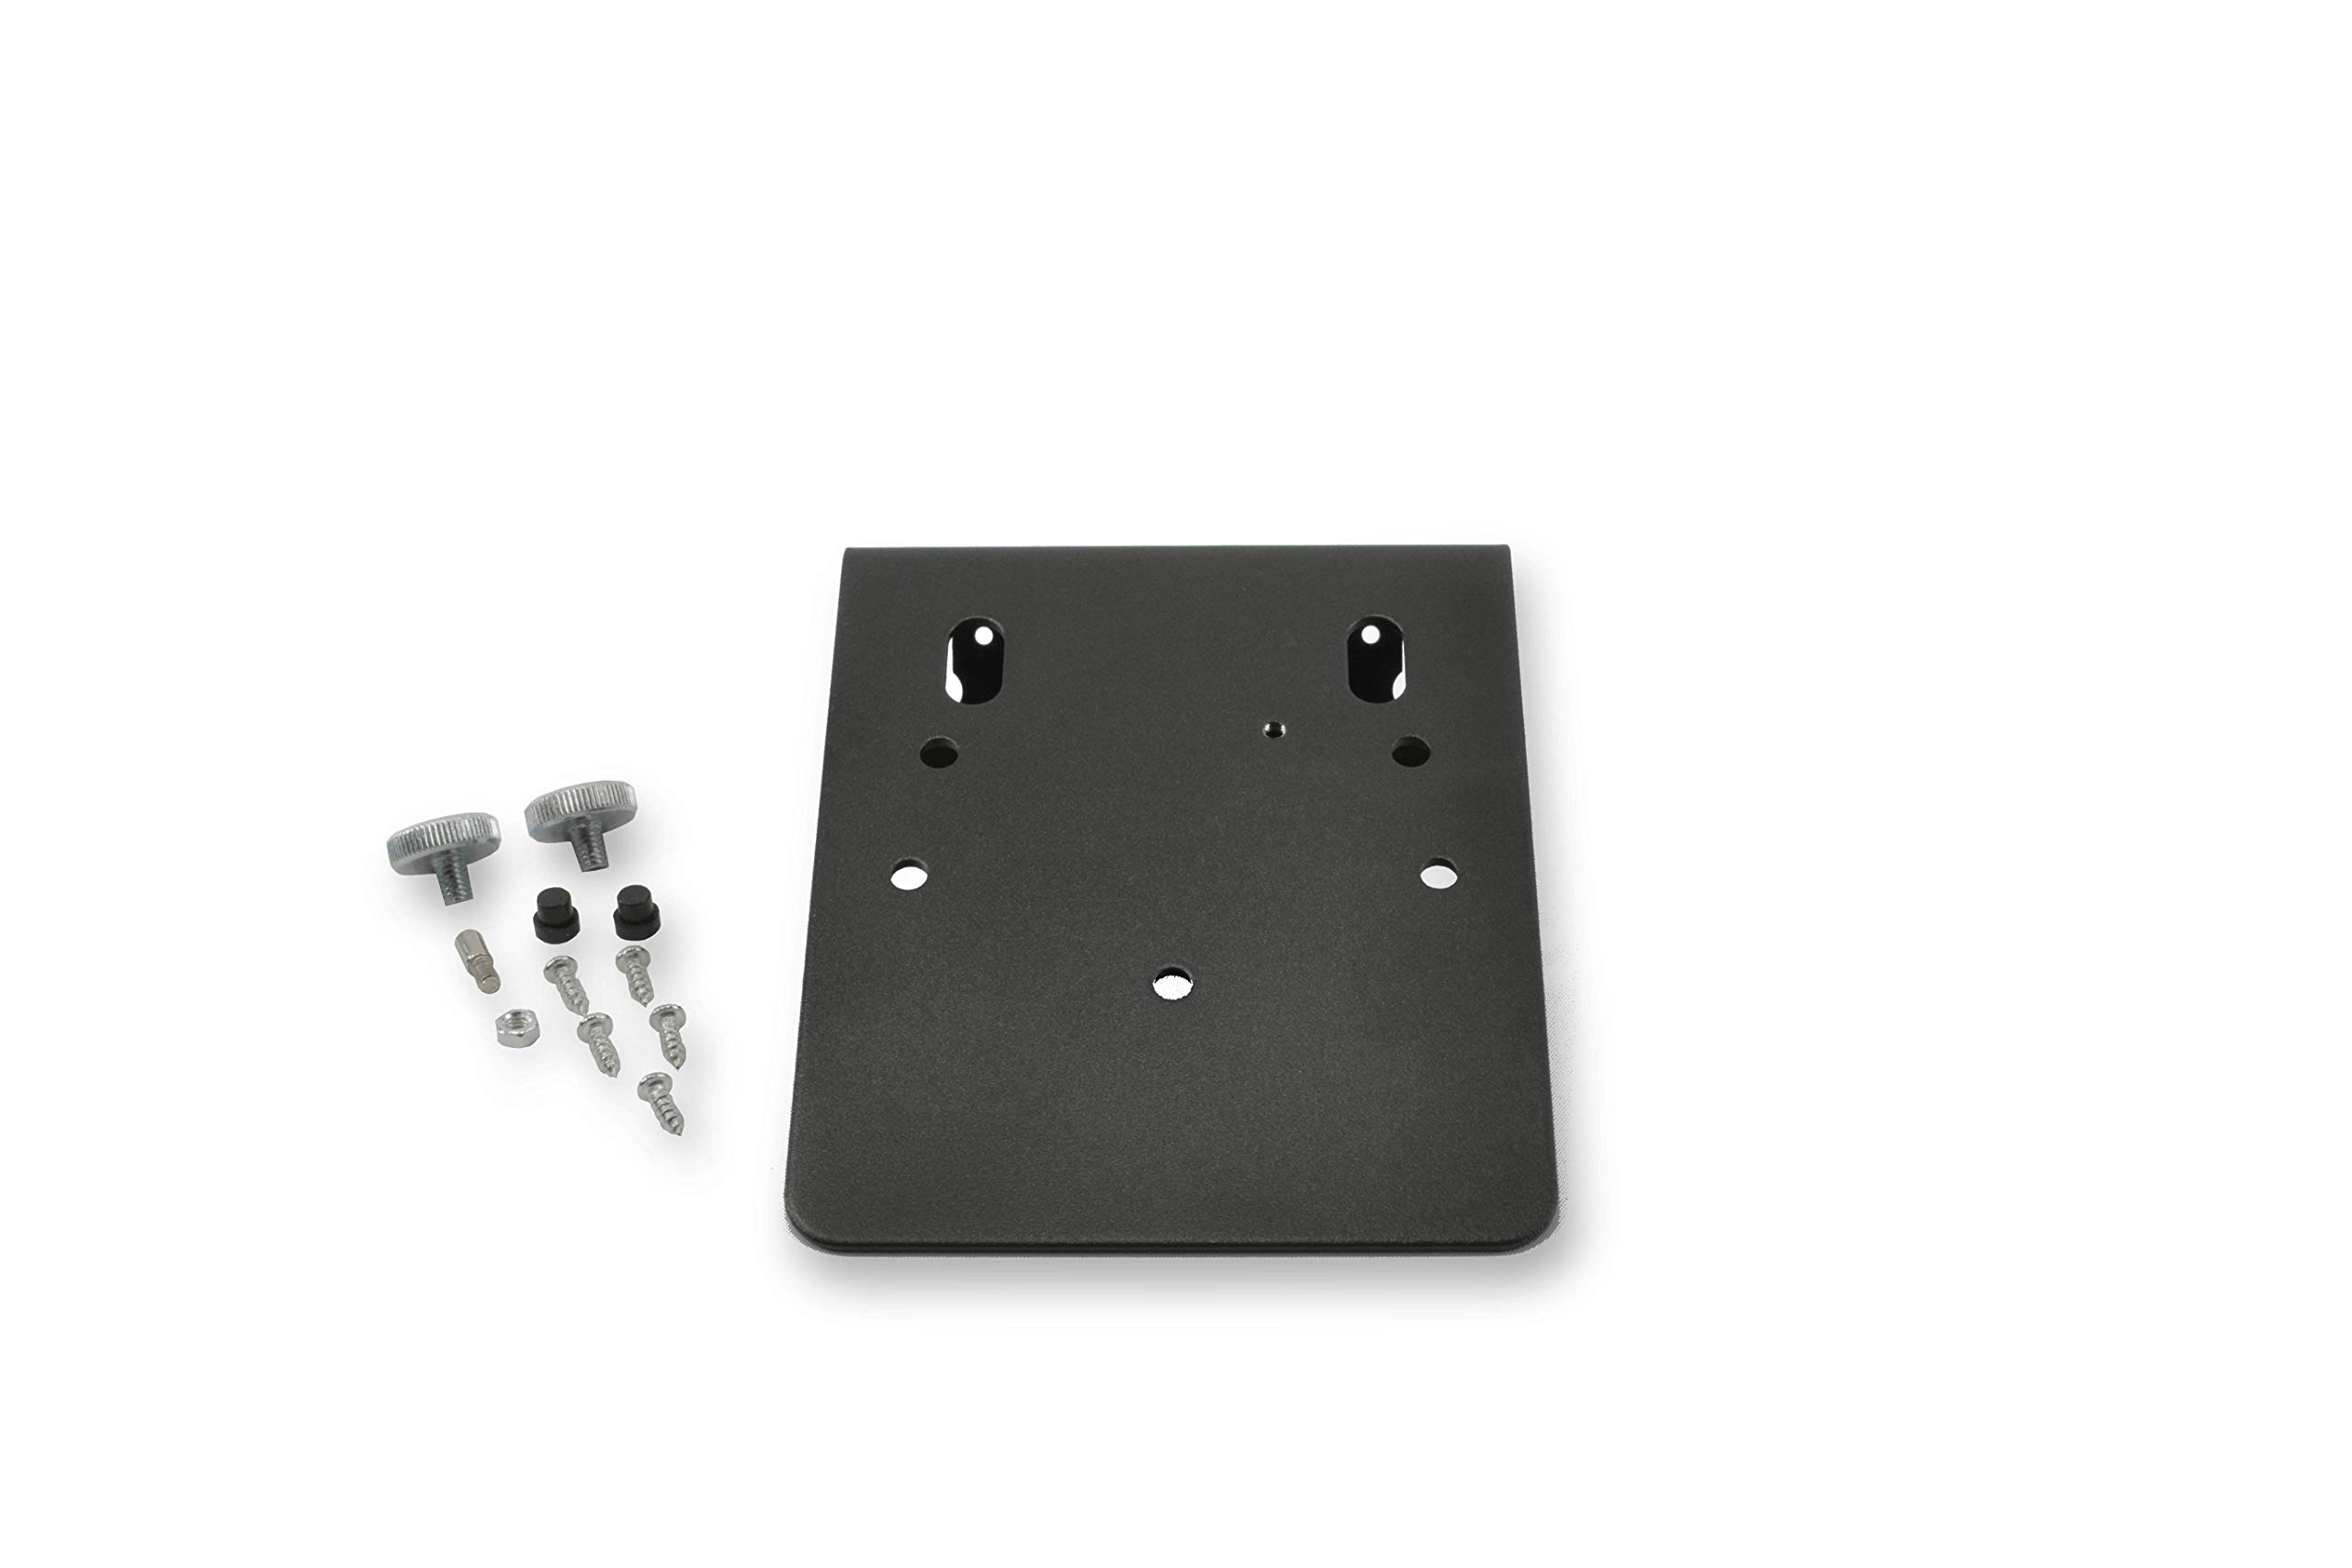 AccuBANKER AC10 AccuSTAND - Compatible with LED420, LED430, LED440, and D585 to Mount to Wall or Under Desk